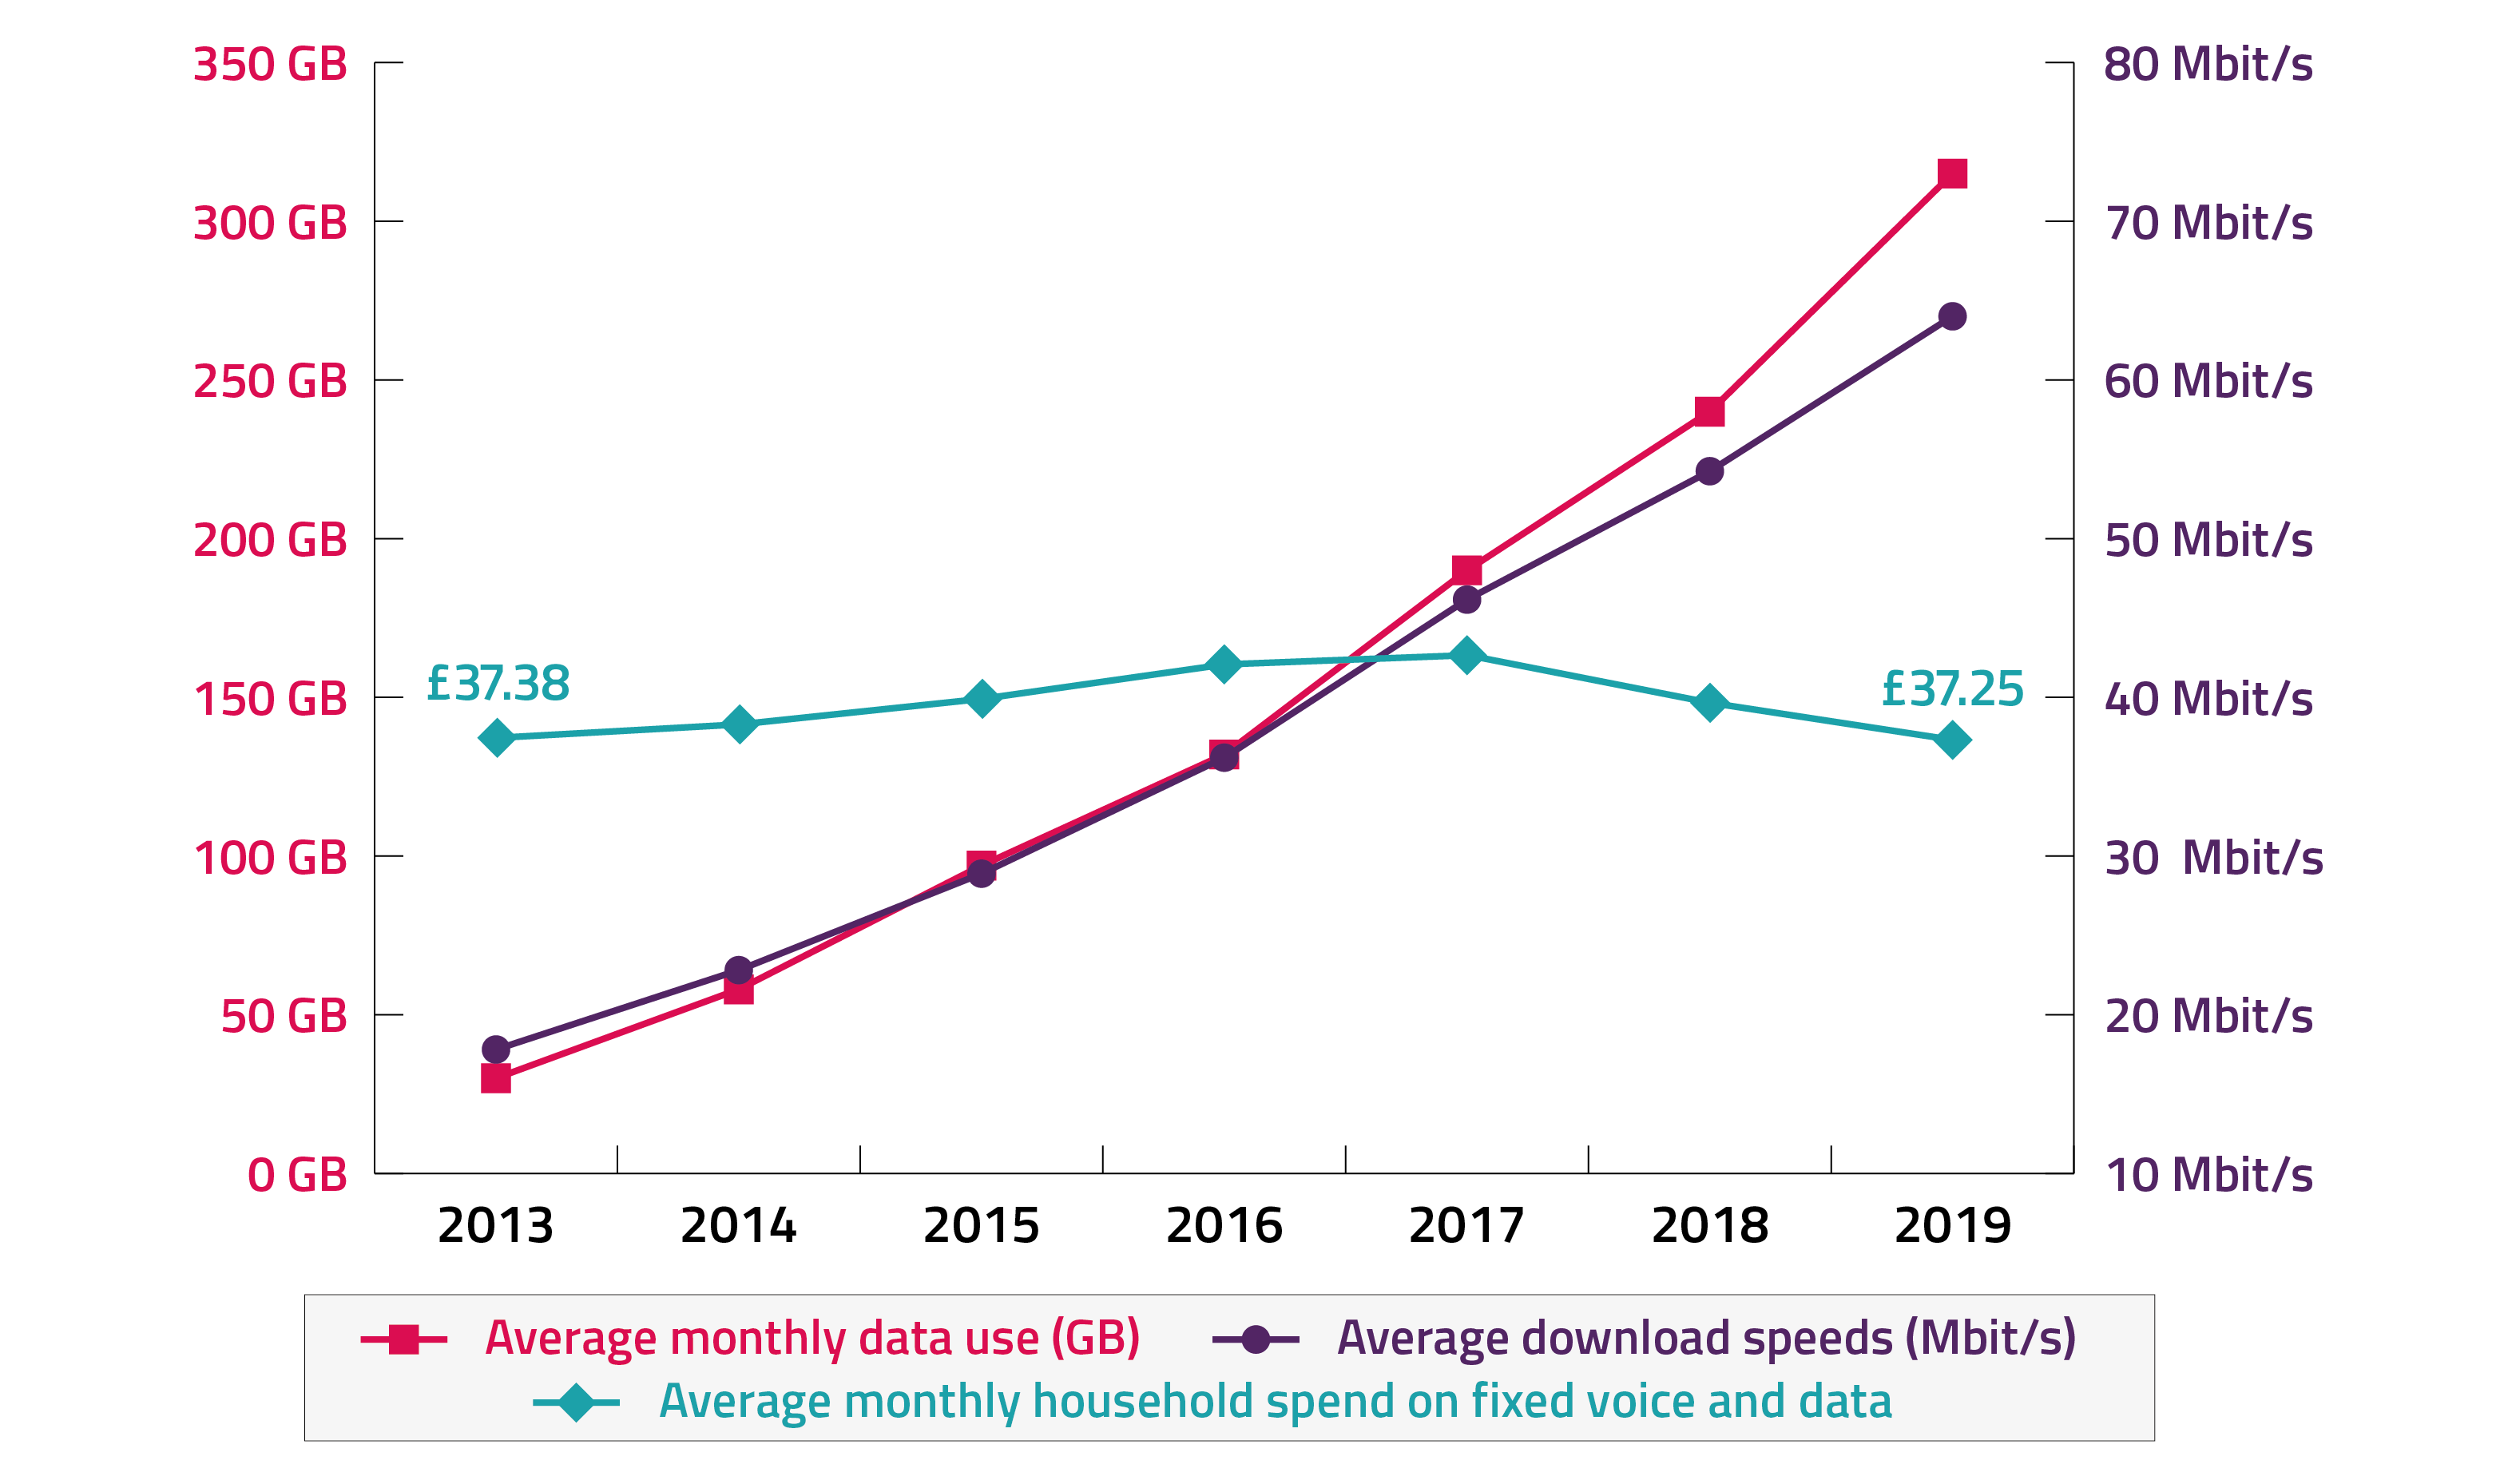 Chart showing that average internet speeds and data usage in the UK rose significantly between 2013 and 2019, while average household spend on telecoms was broadly flat in real terms over the same period.